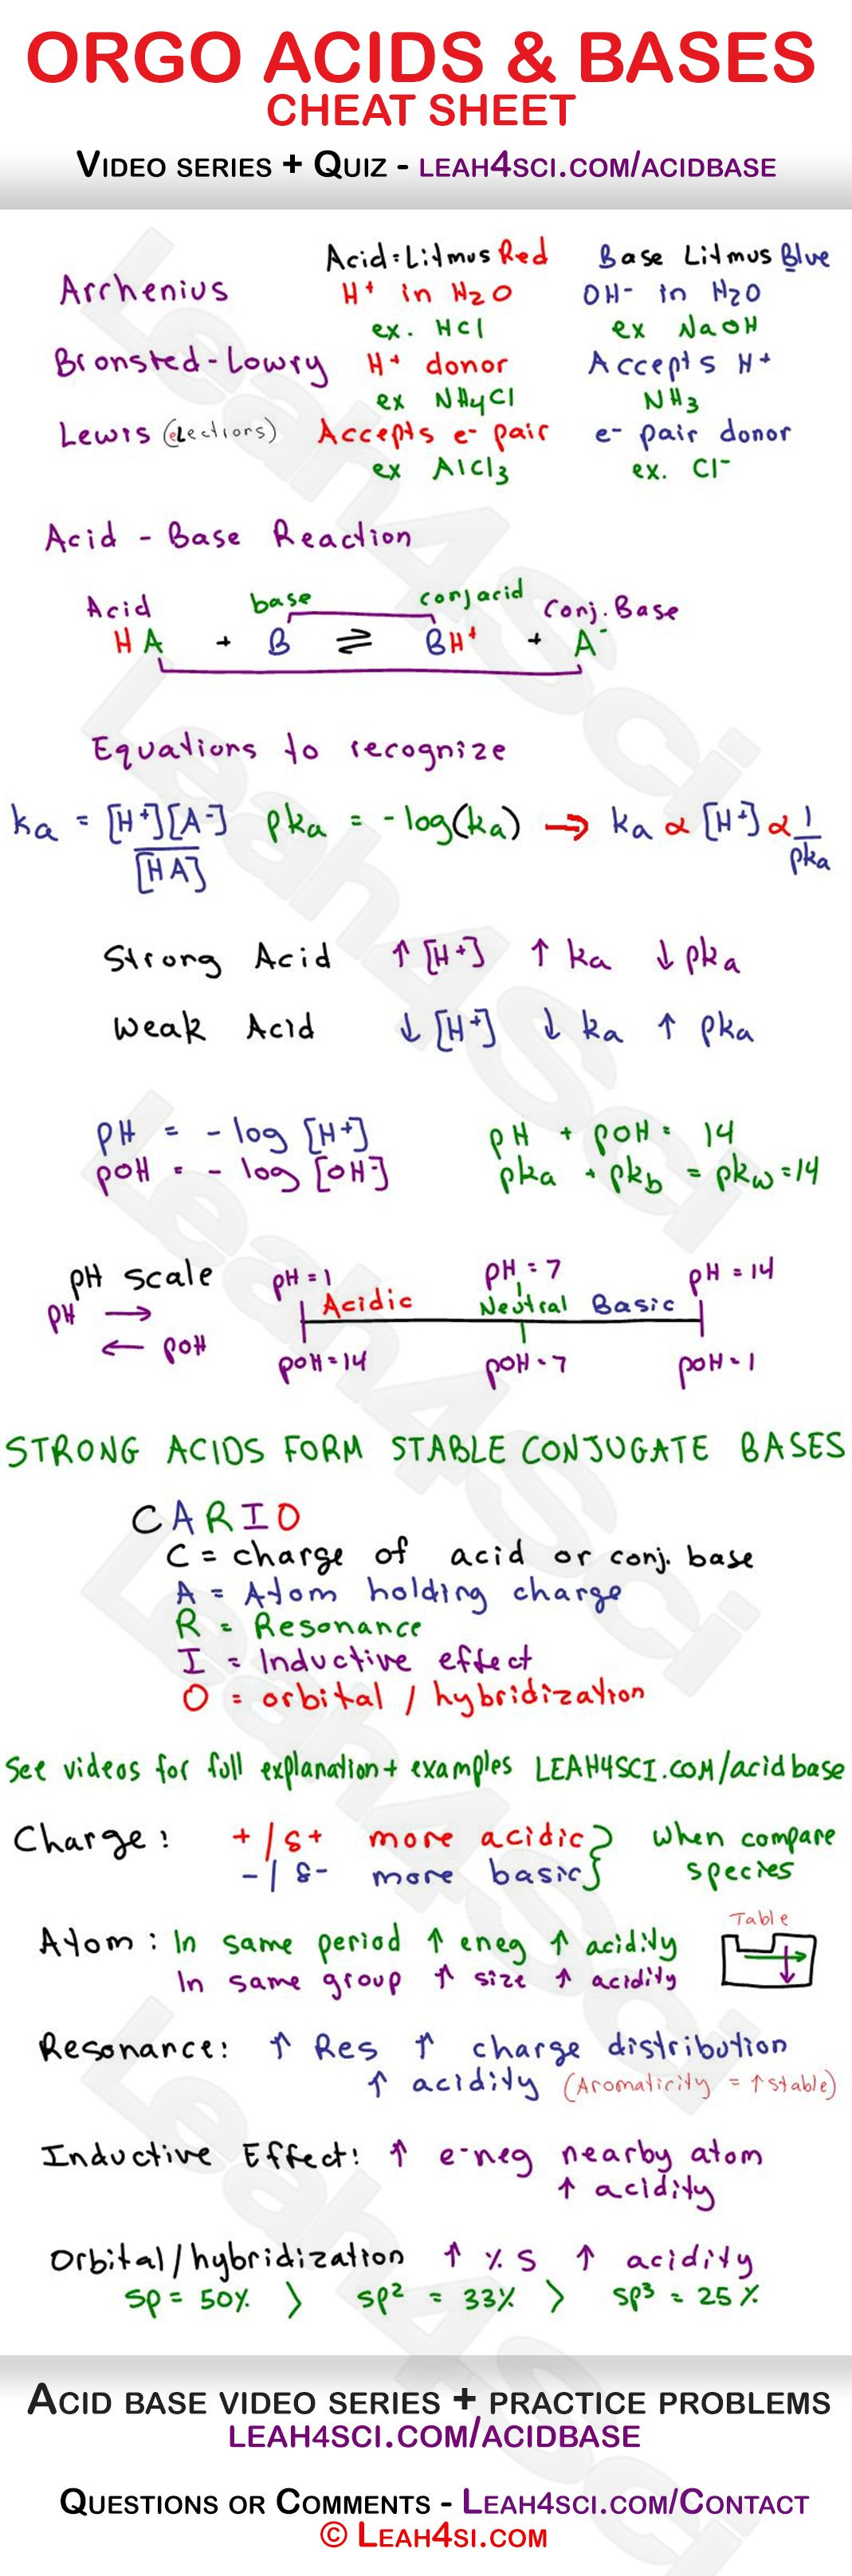 Acids and Bases in Organic Chemistry Arrhenius BronstedLowry – Conjugate Acid Base Pairs Worksheet